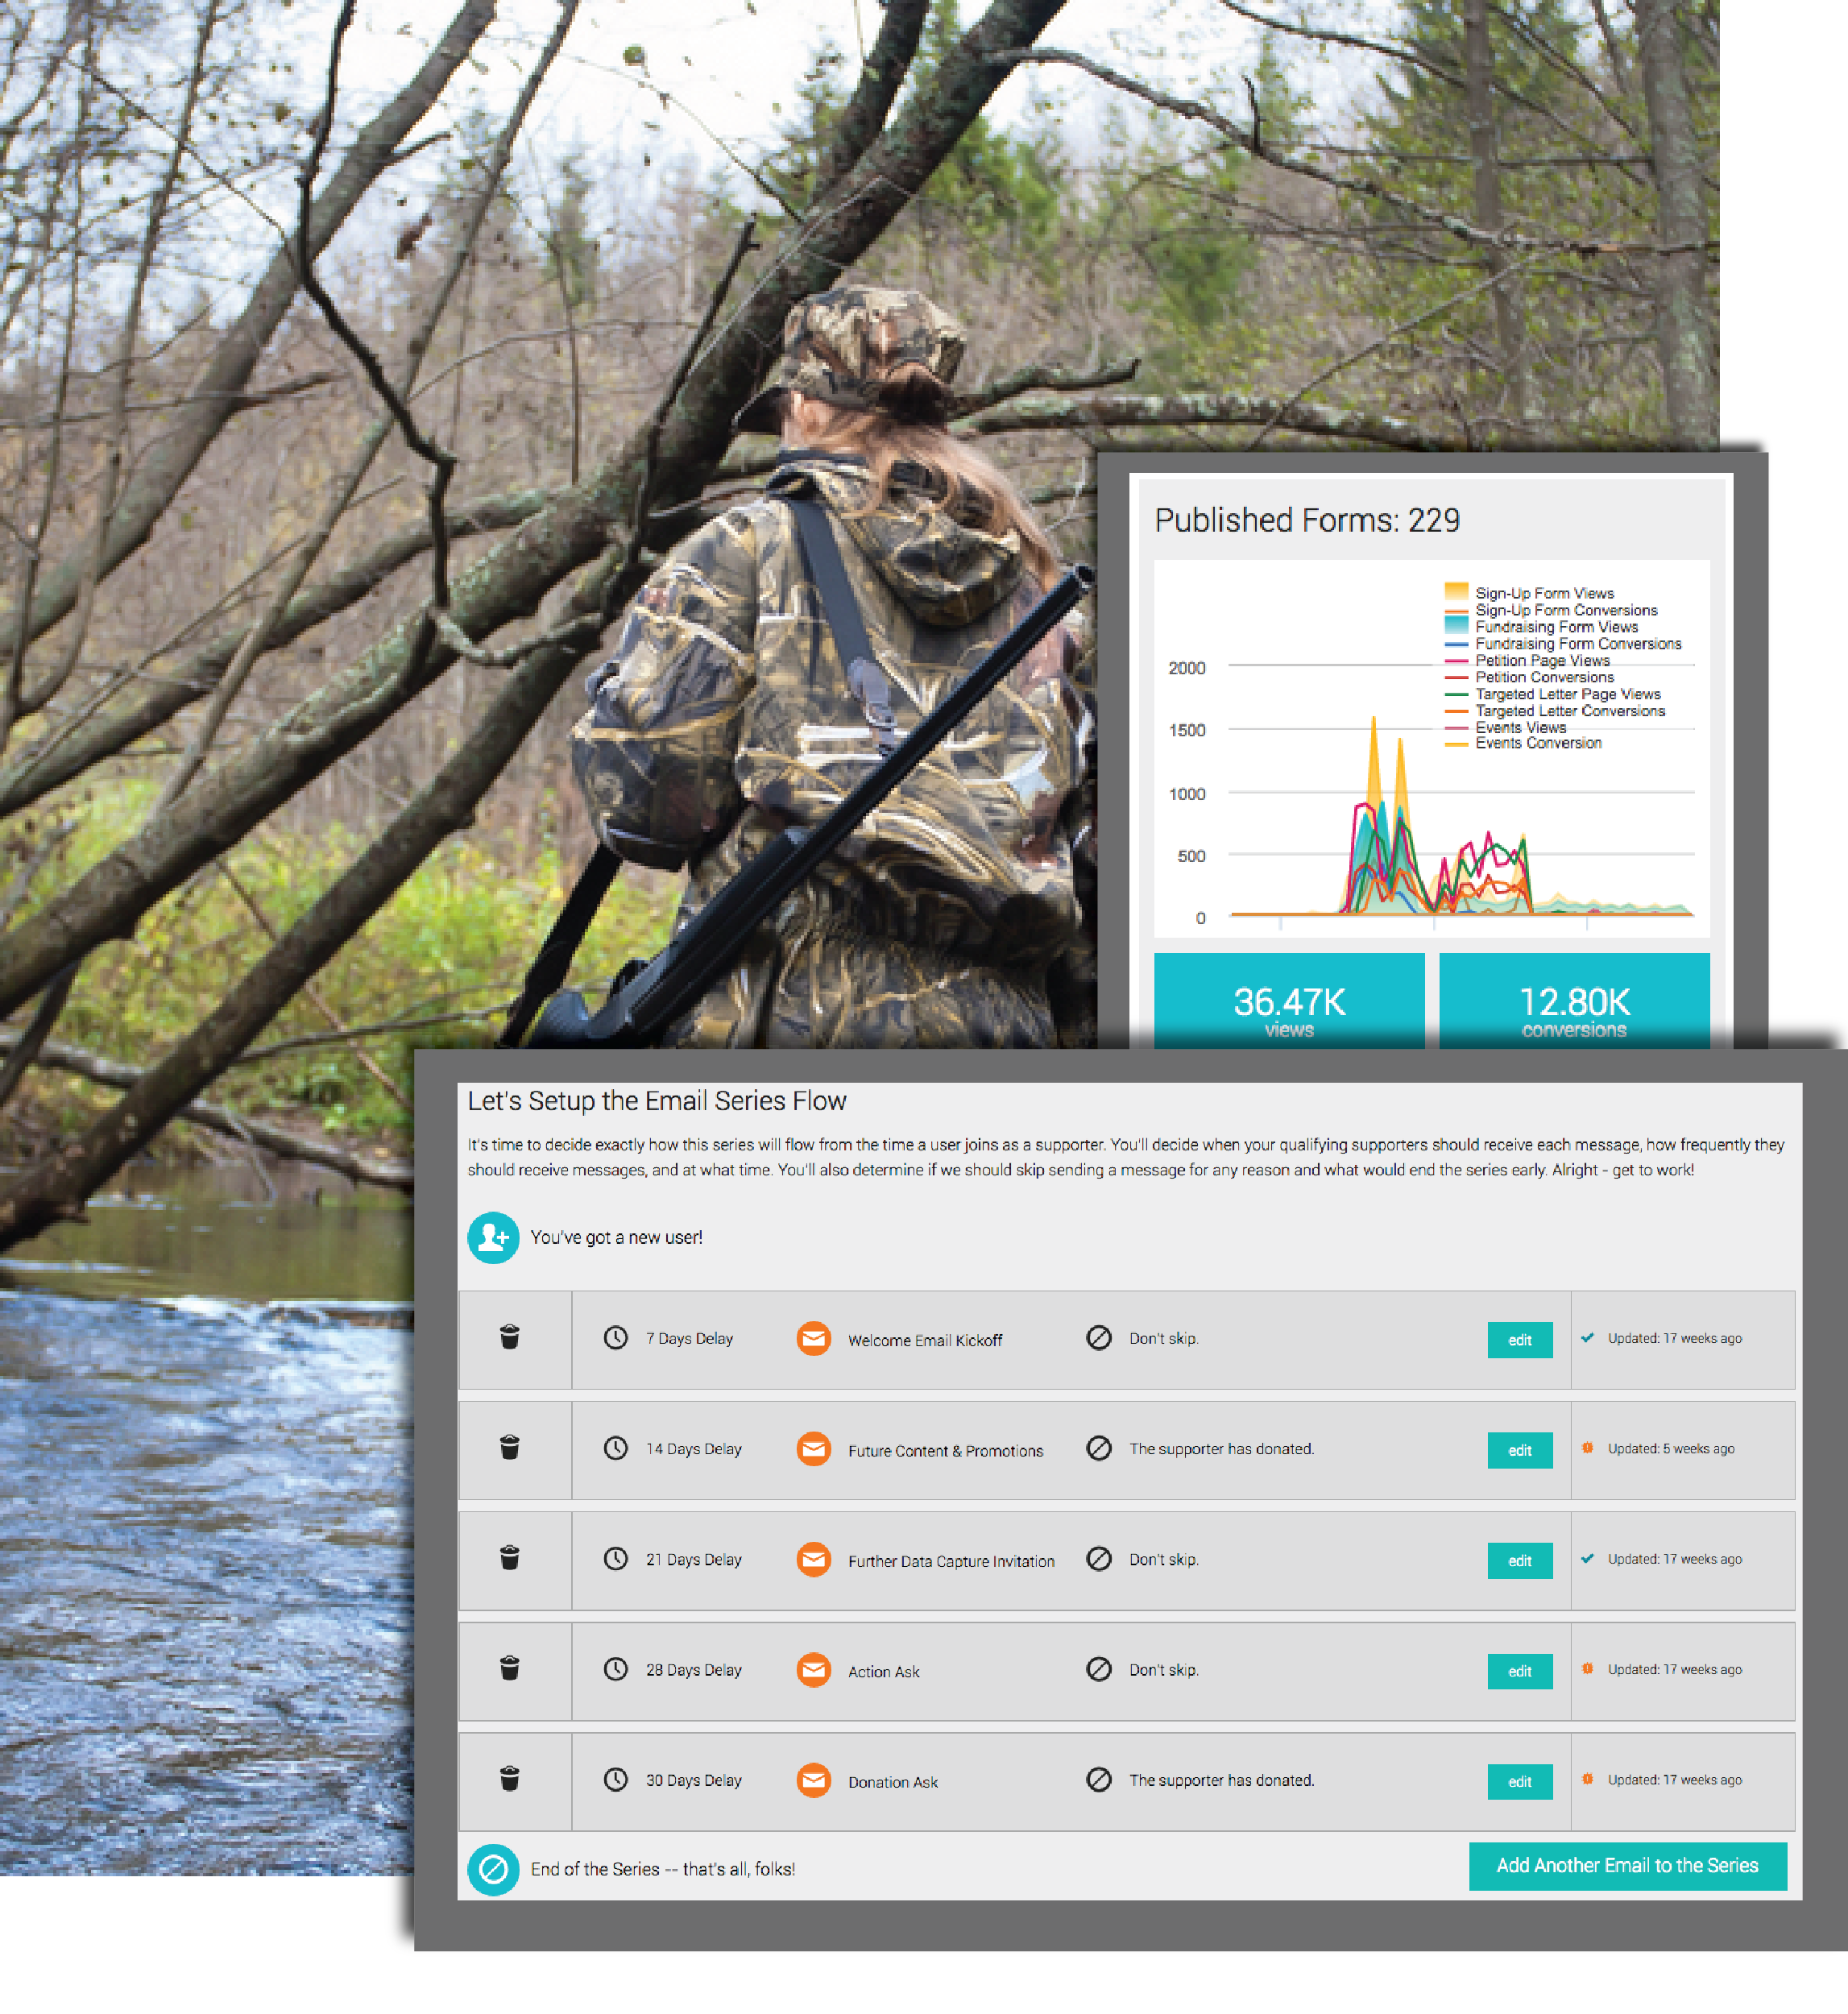 NWTF_Images-03.png